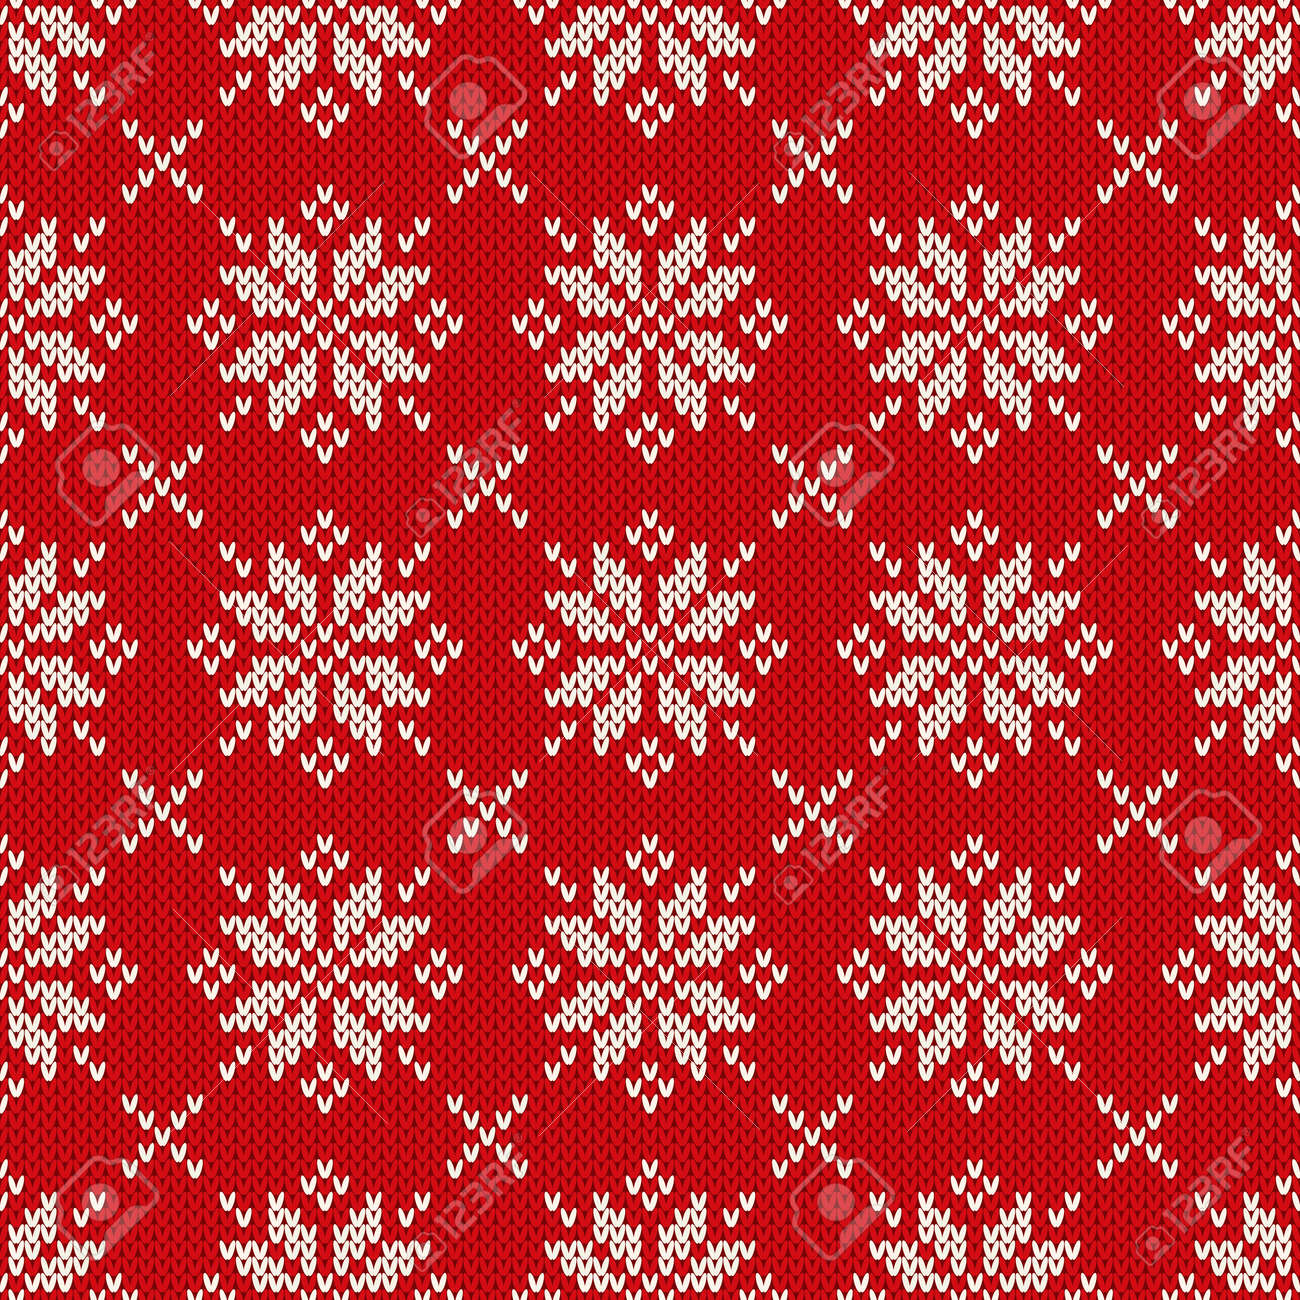 df671196e5b8d7 Vector - Winter Holiday Knitted Pattern with Snowflakes. Fair Isle Knitting  Sweater Design. Seamless Christmas and New Year Background